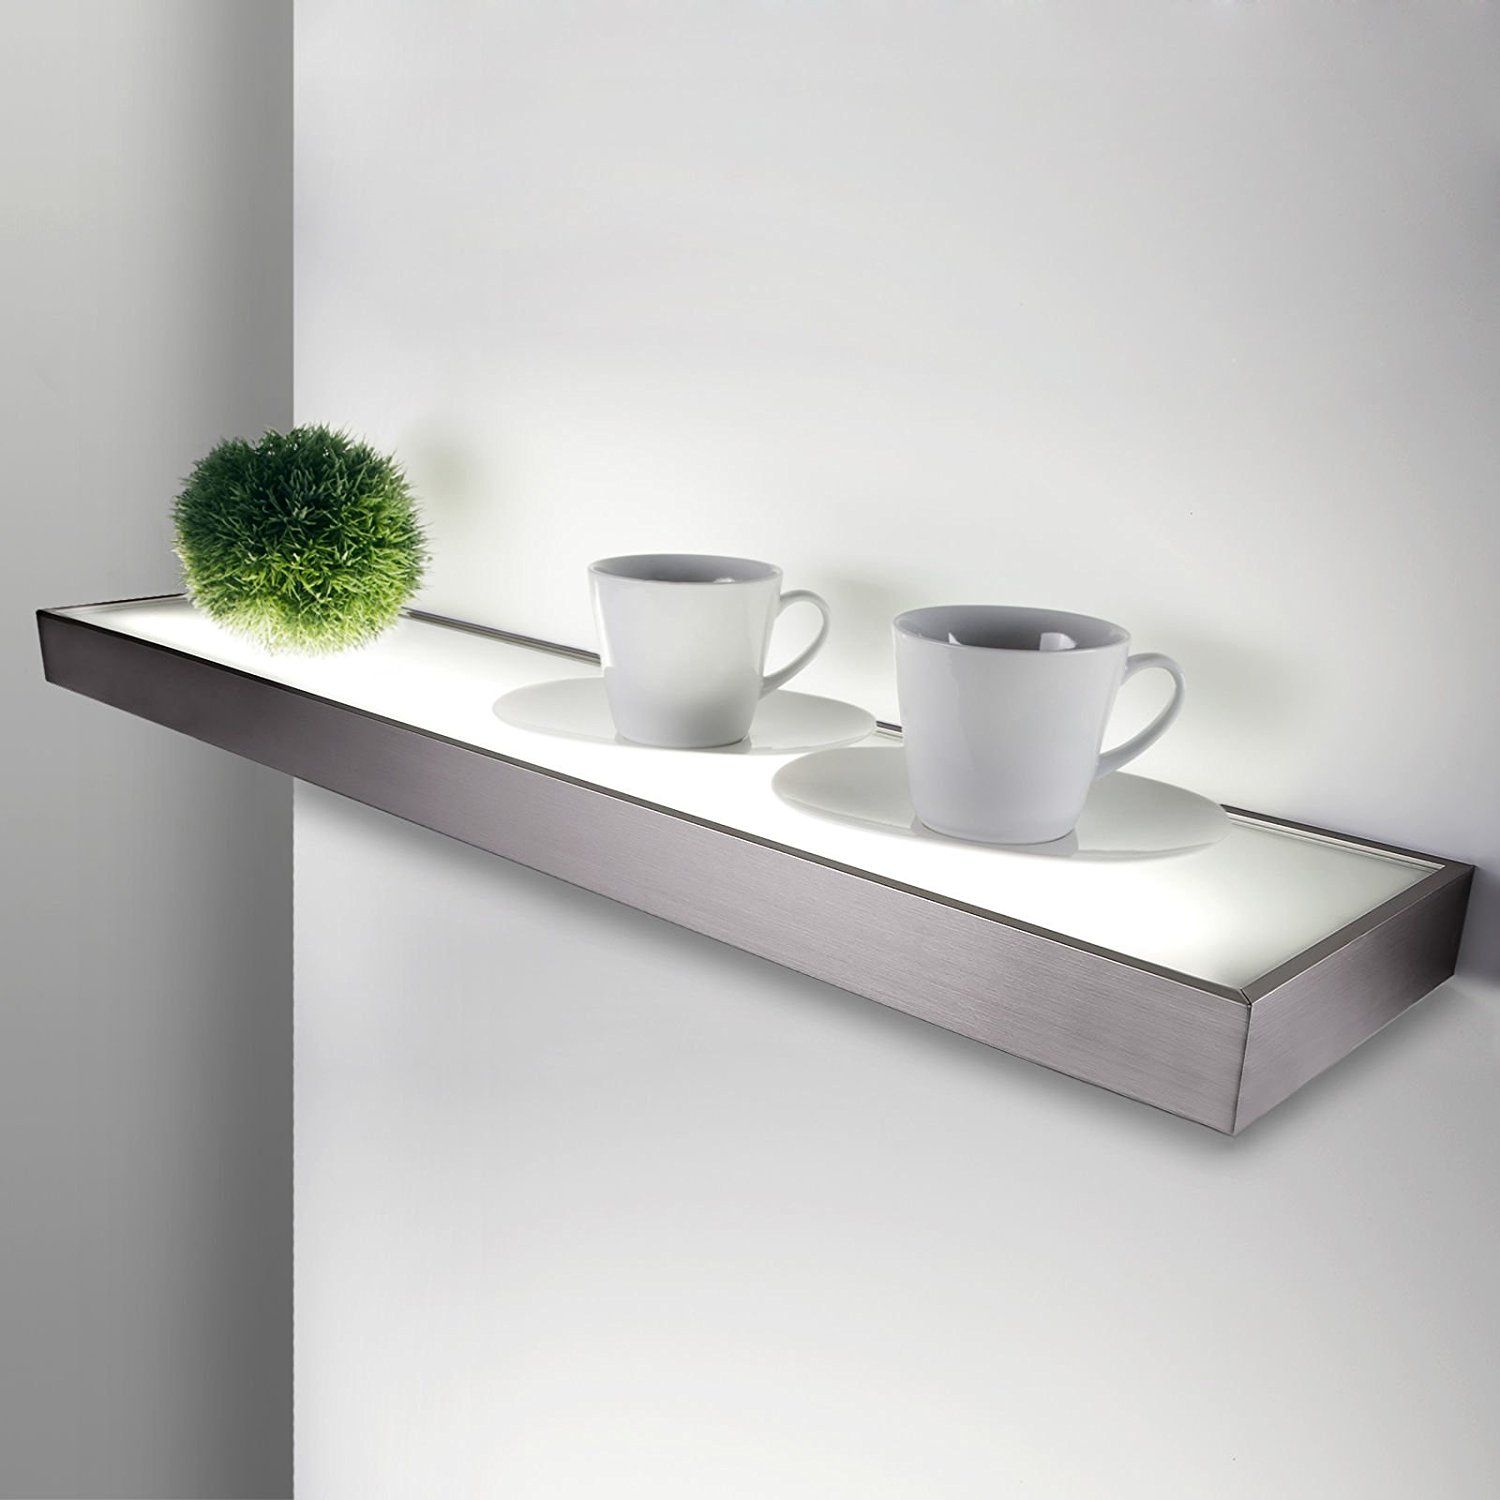 so tech illuminated shelf dallas 1200 x 200 mm 28 watt aspect of stainless steel incl t5 neon. Black Bedroom Furniture Sets. Home Design Ideas